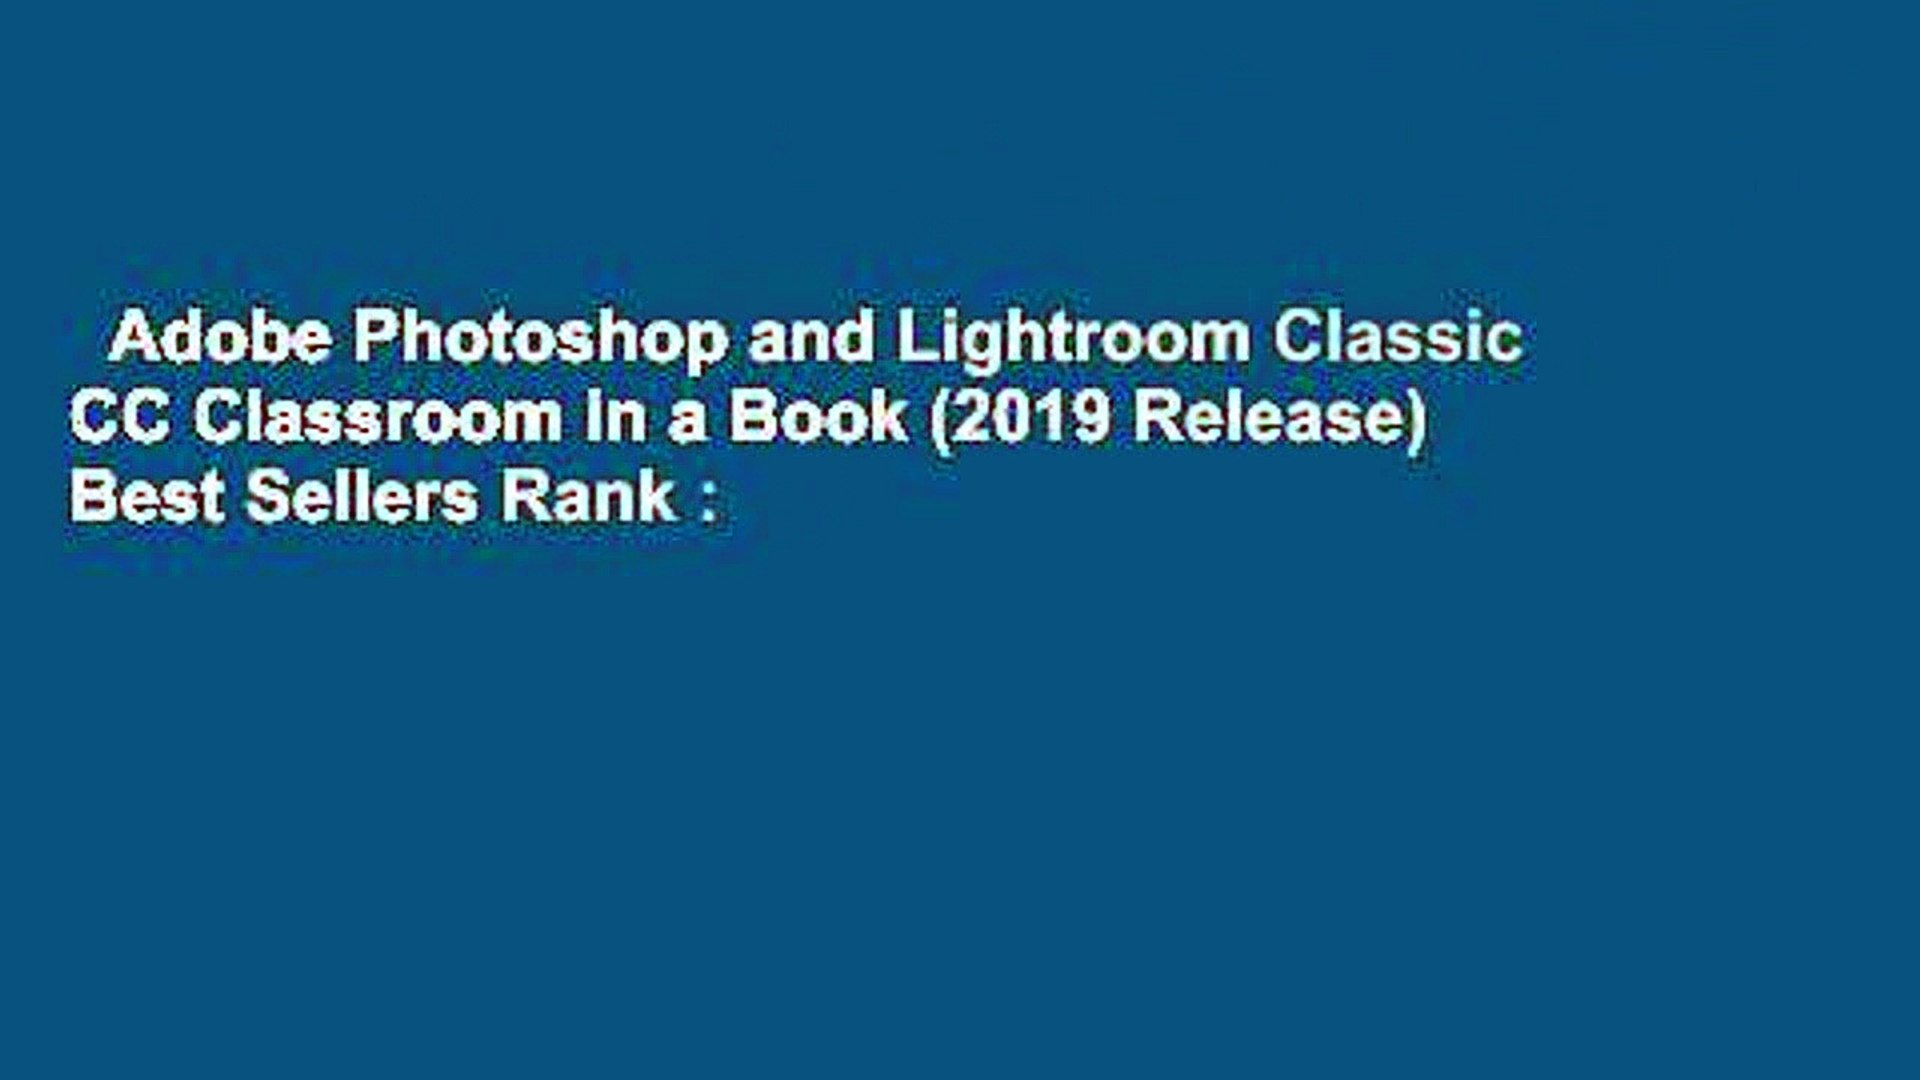 Adobe Photoshop and Lightroom Classic CC Classroom in a Book (2019 Release)  Best Sellers Rank :